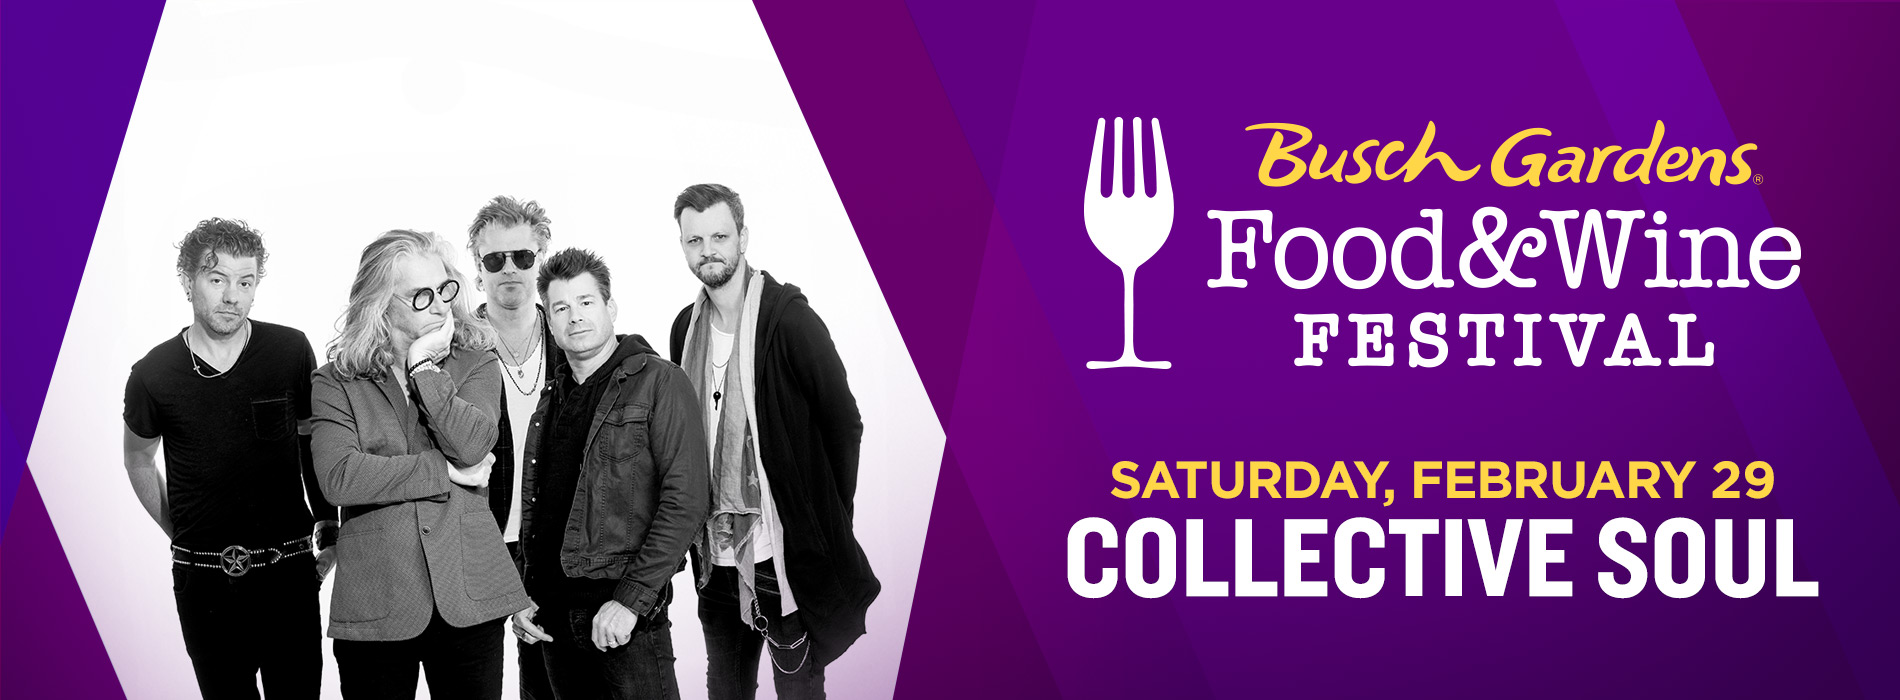 Collective Soul at Busch Gardens on Saturday, February 29